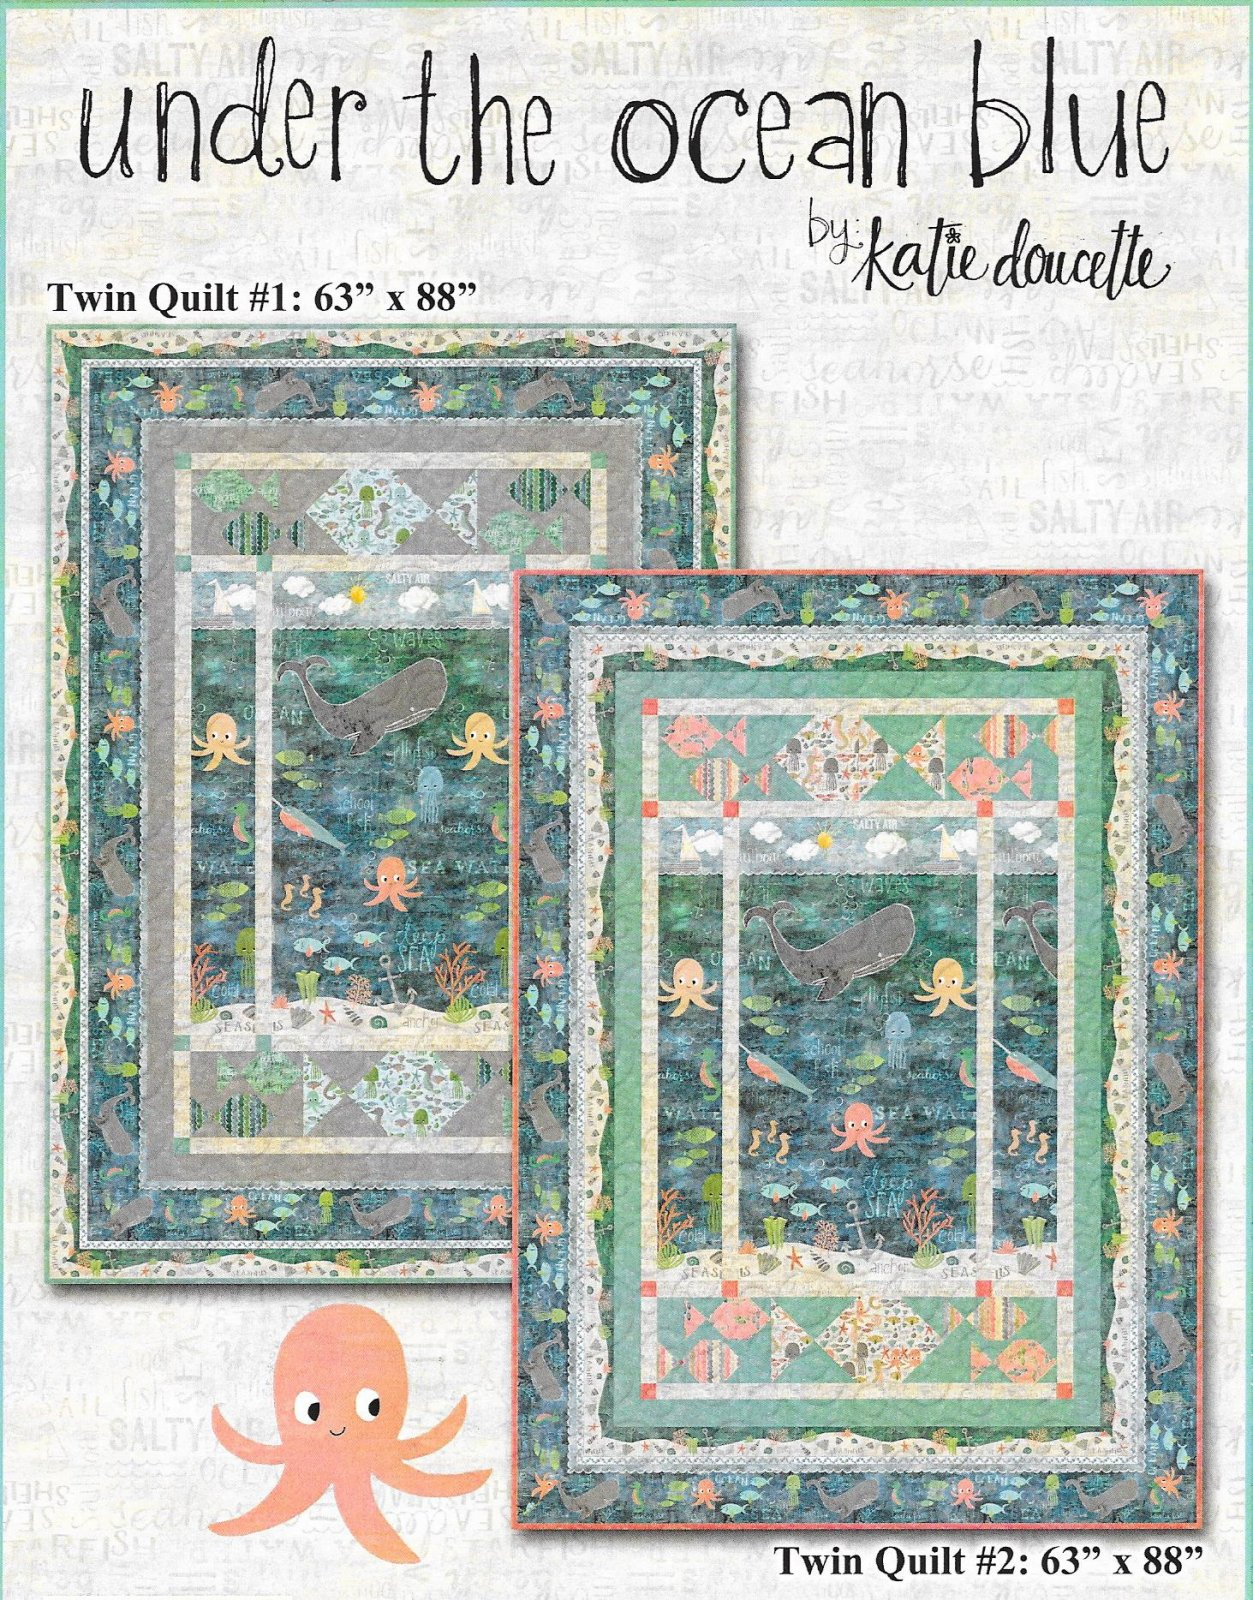 Under the Sea twin sized quilt kit